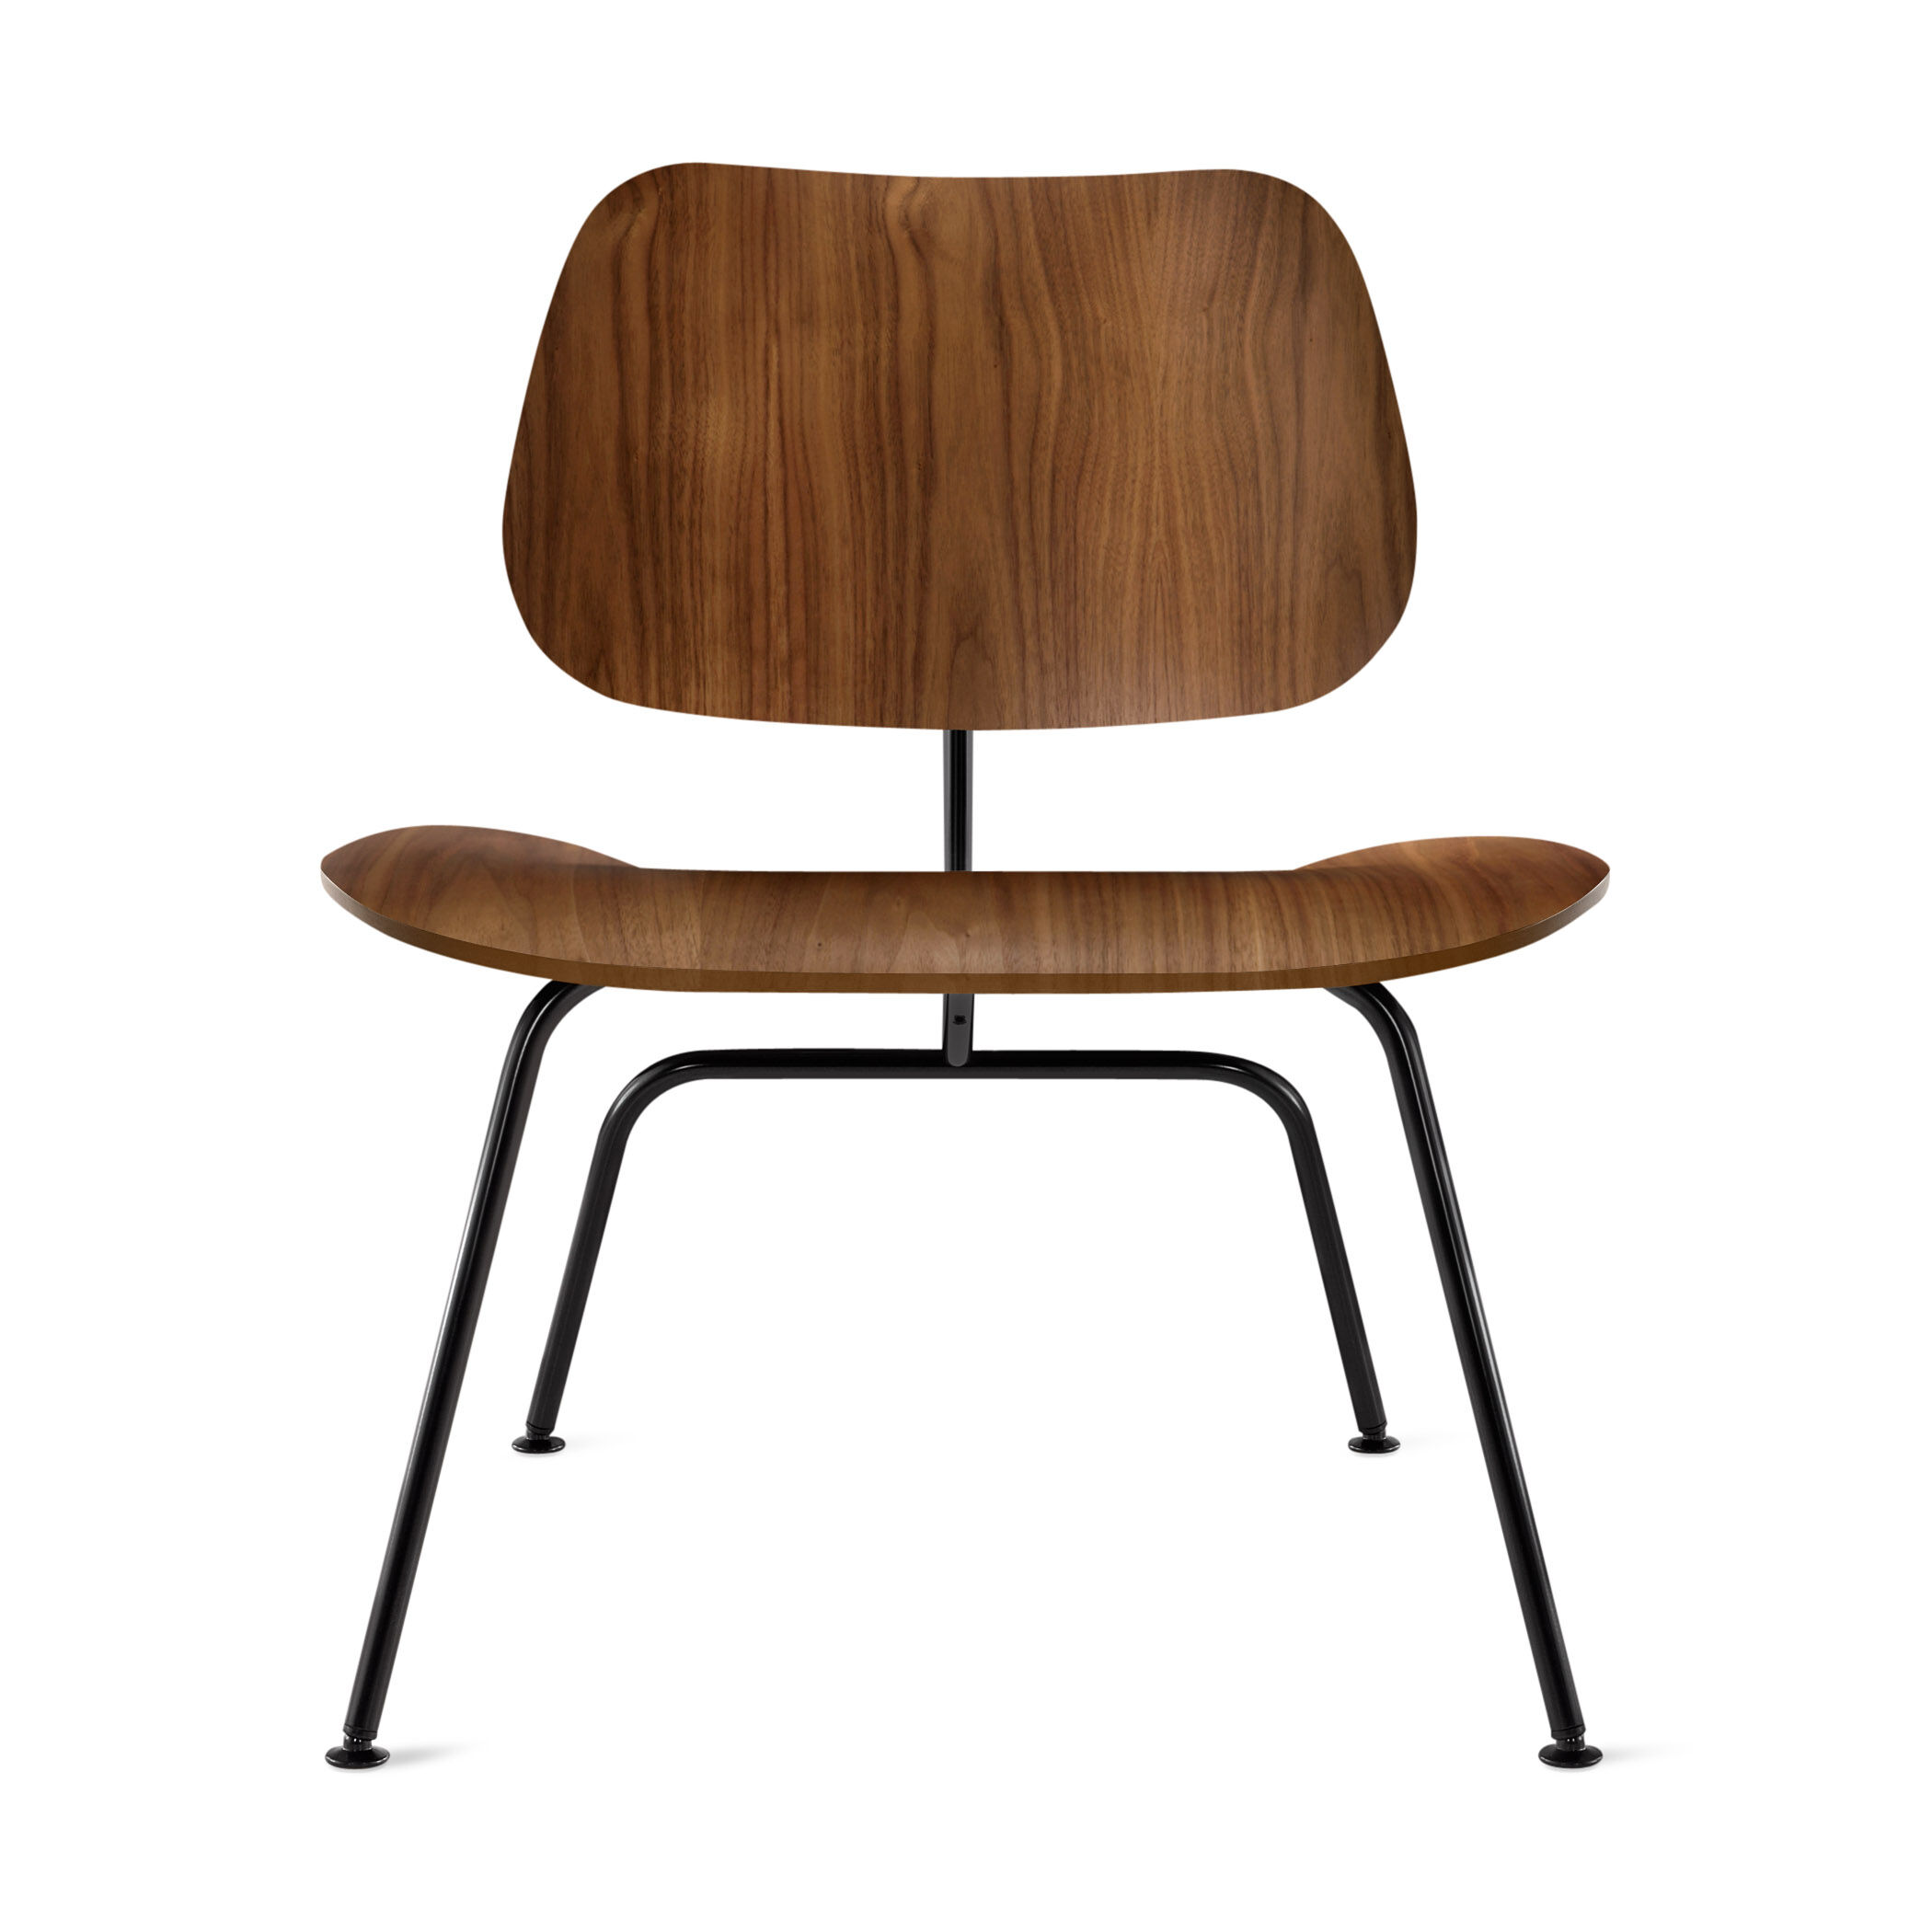 Charmant Molded Plywood LCM Chair In Color